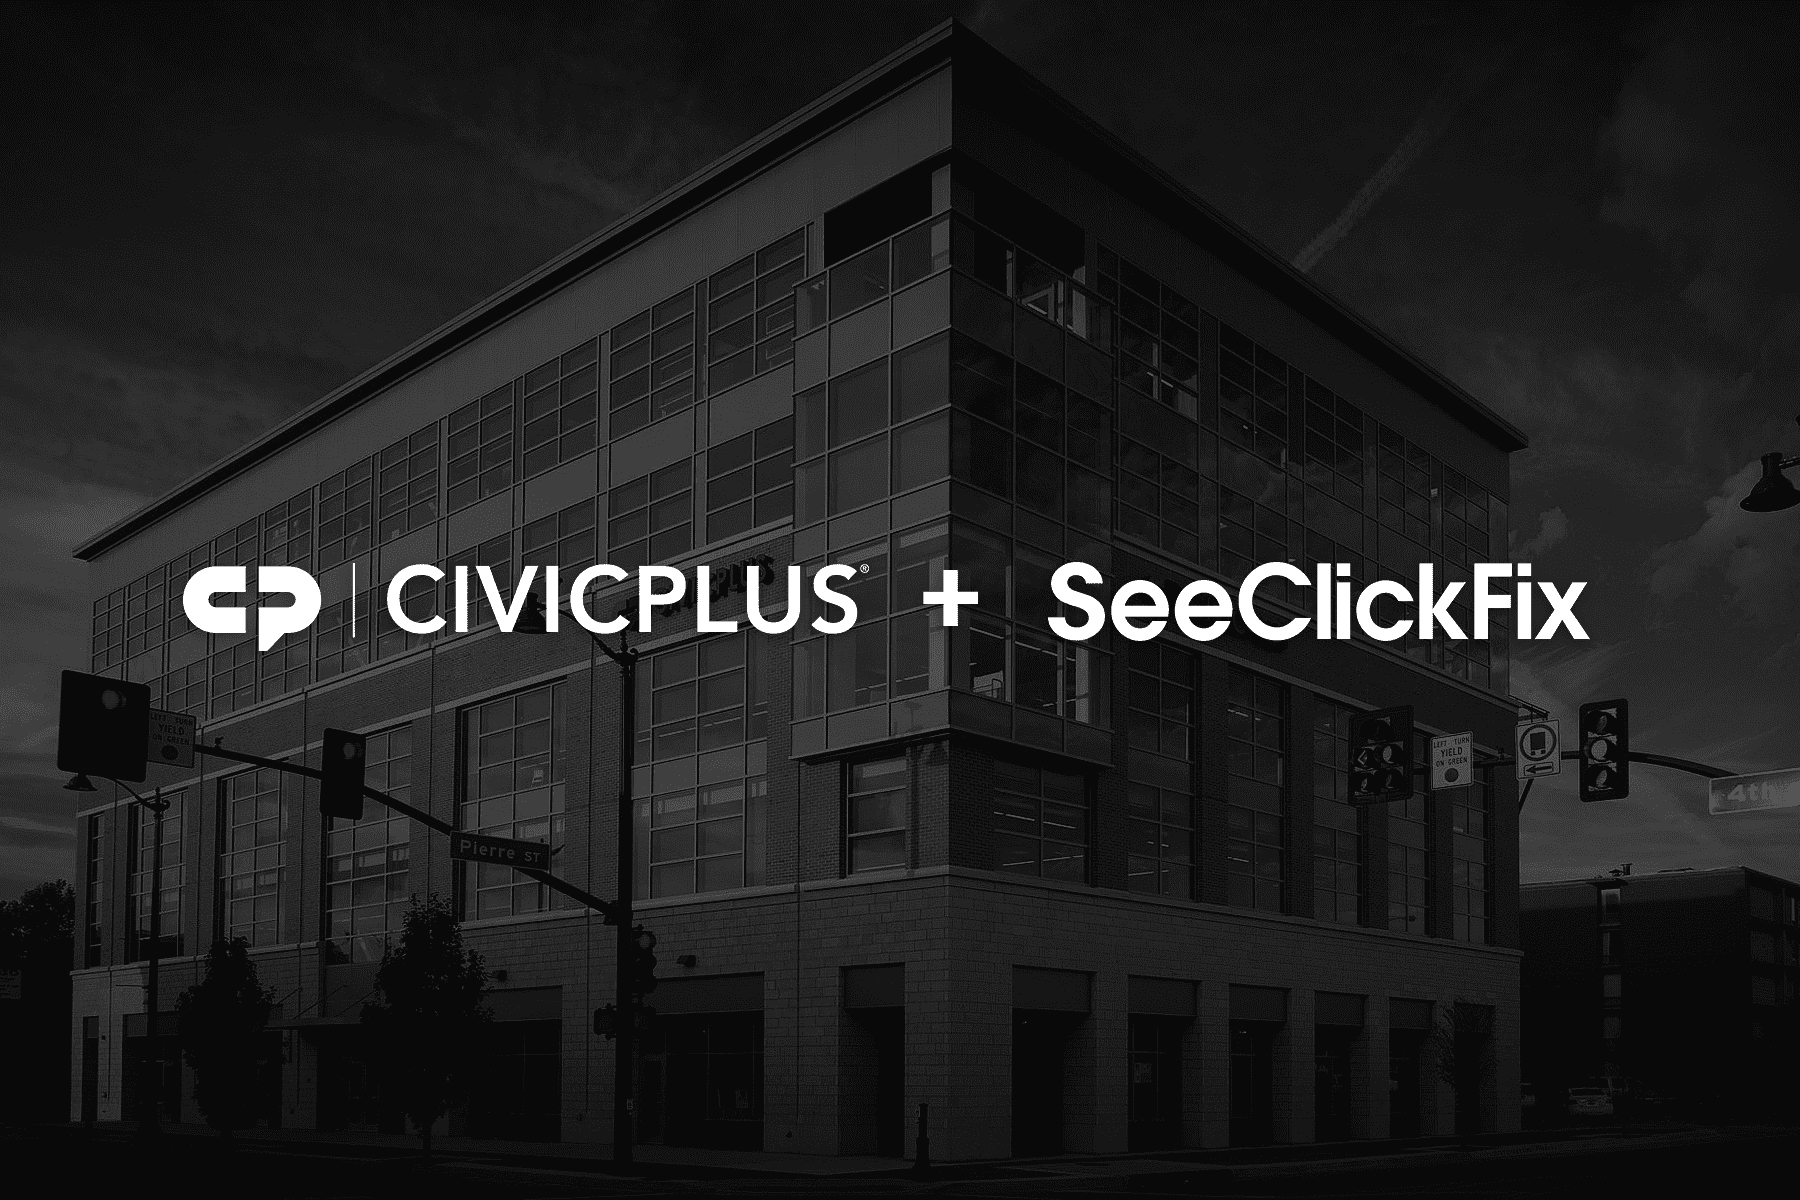 CivicPlus Acquires SeeClickFix 311 Citizen Request and Work Management Software